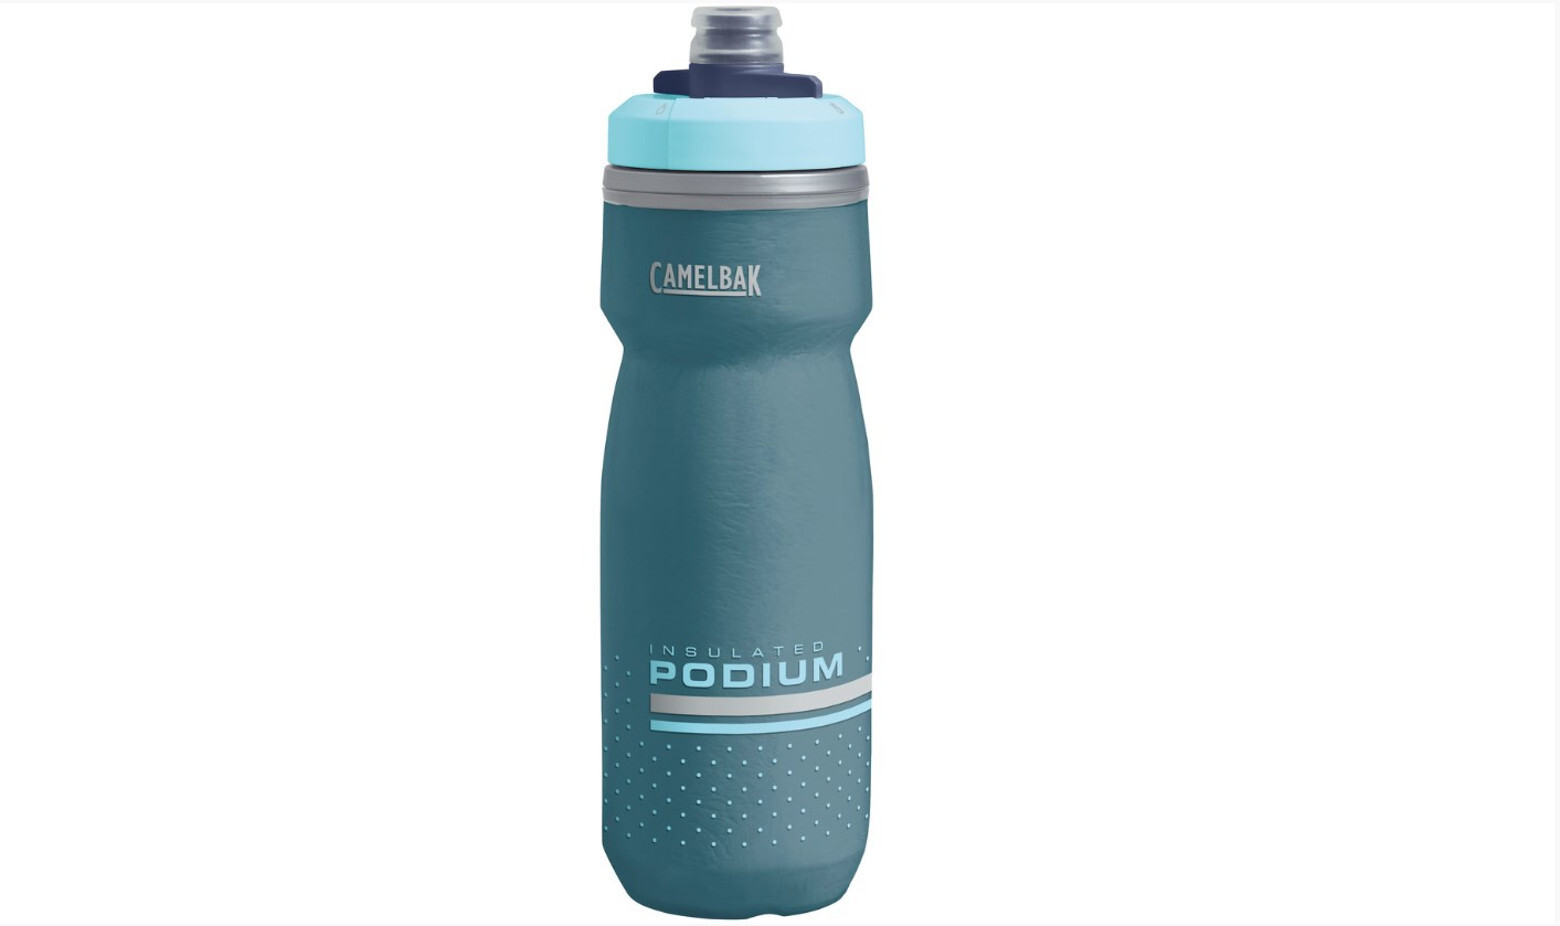 Camelbak Podium Chill Bottle 620ml Teal At Bikester Co Uk